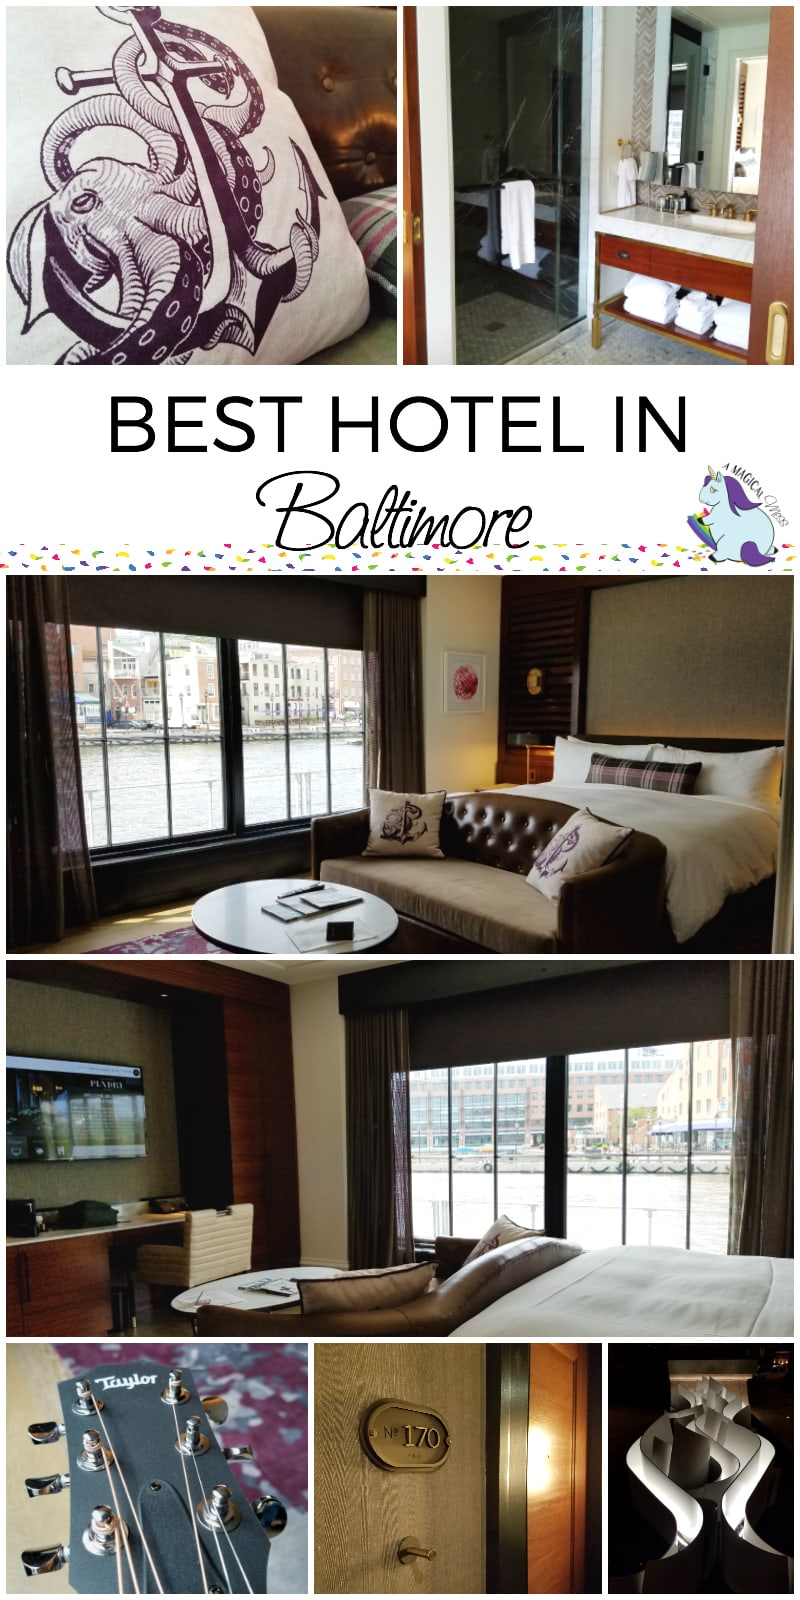 Best Hotel in Baltimore for Romance, Luxury, and An Epic Girl's Weekend